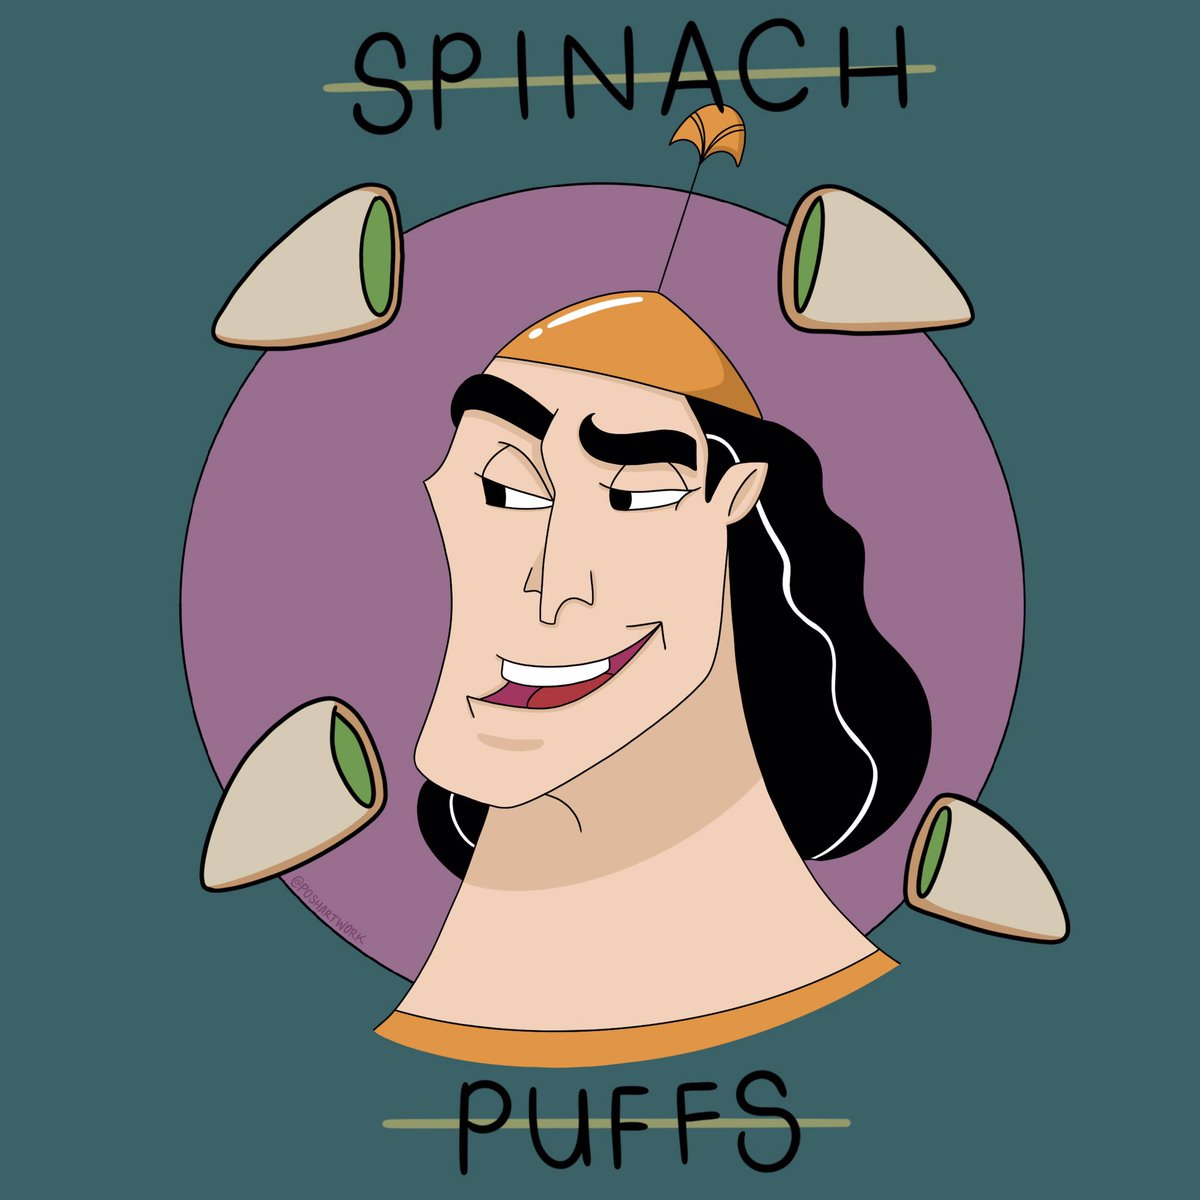 KRONK 💕 From card stock to a digital piece. #ArtistsOnTwitter #EmperorsNewGroove #SpinachPuffs